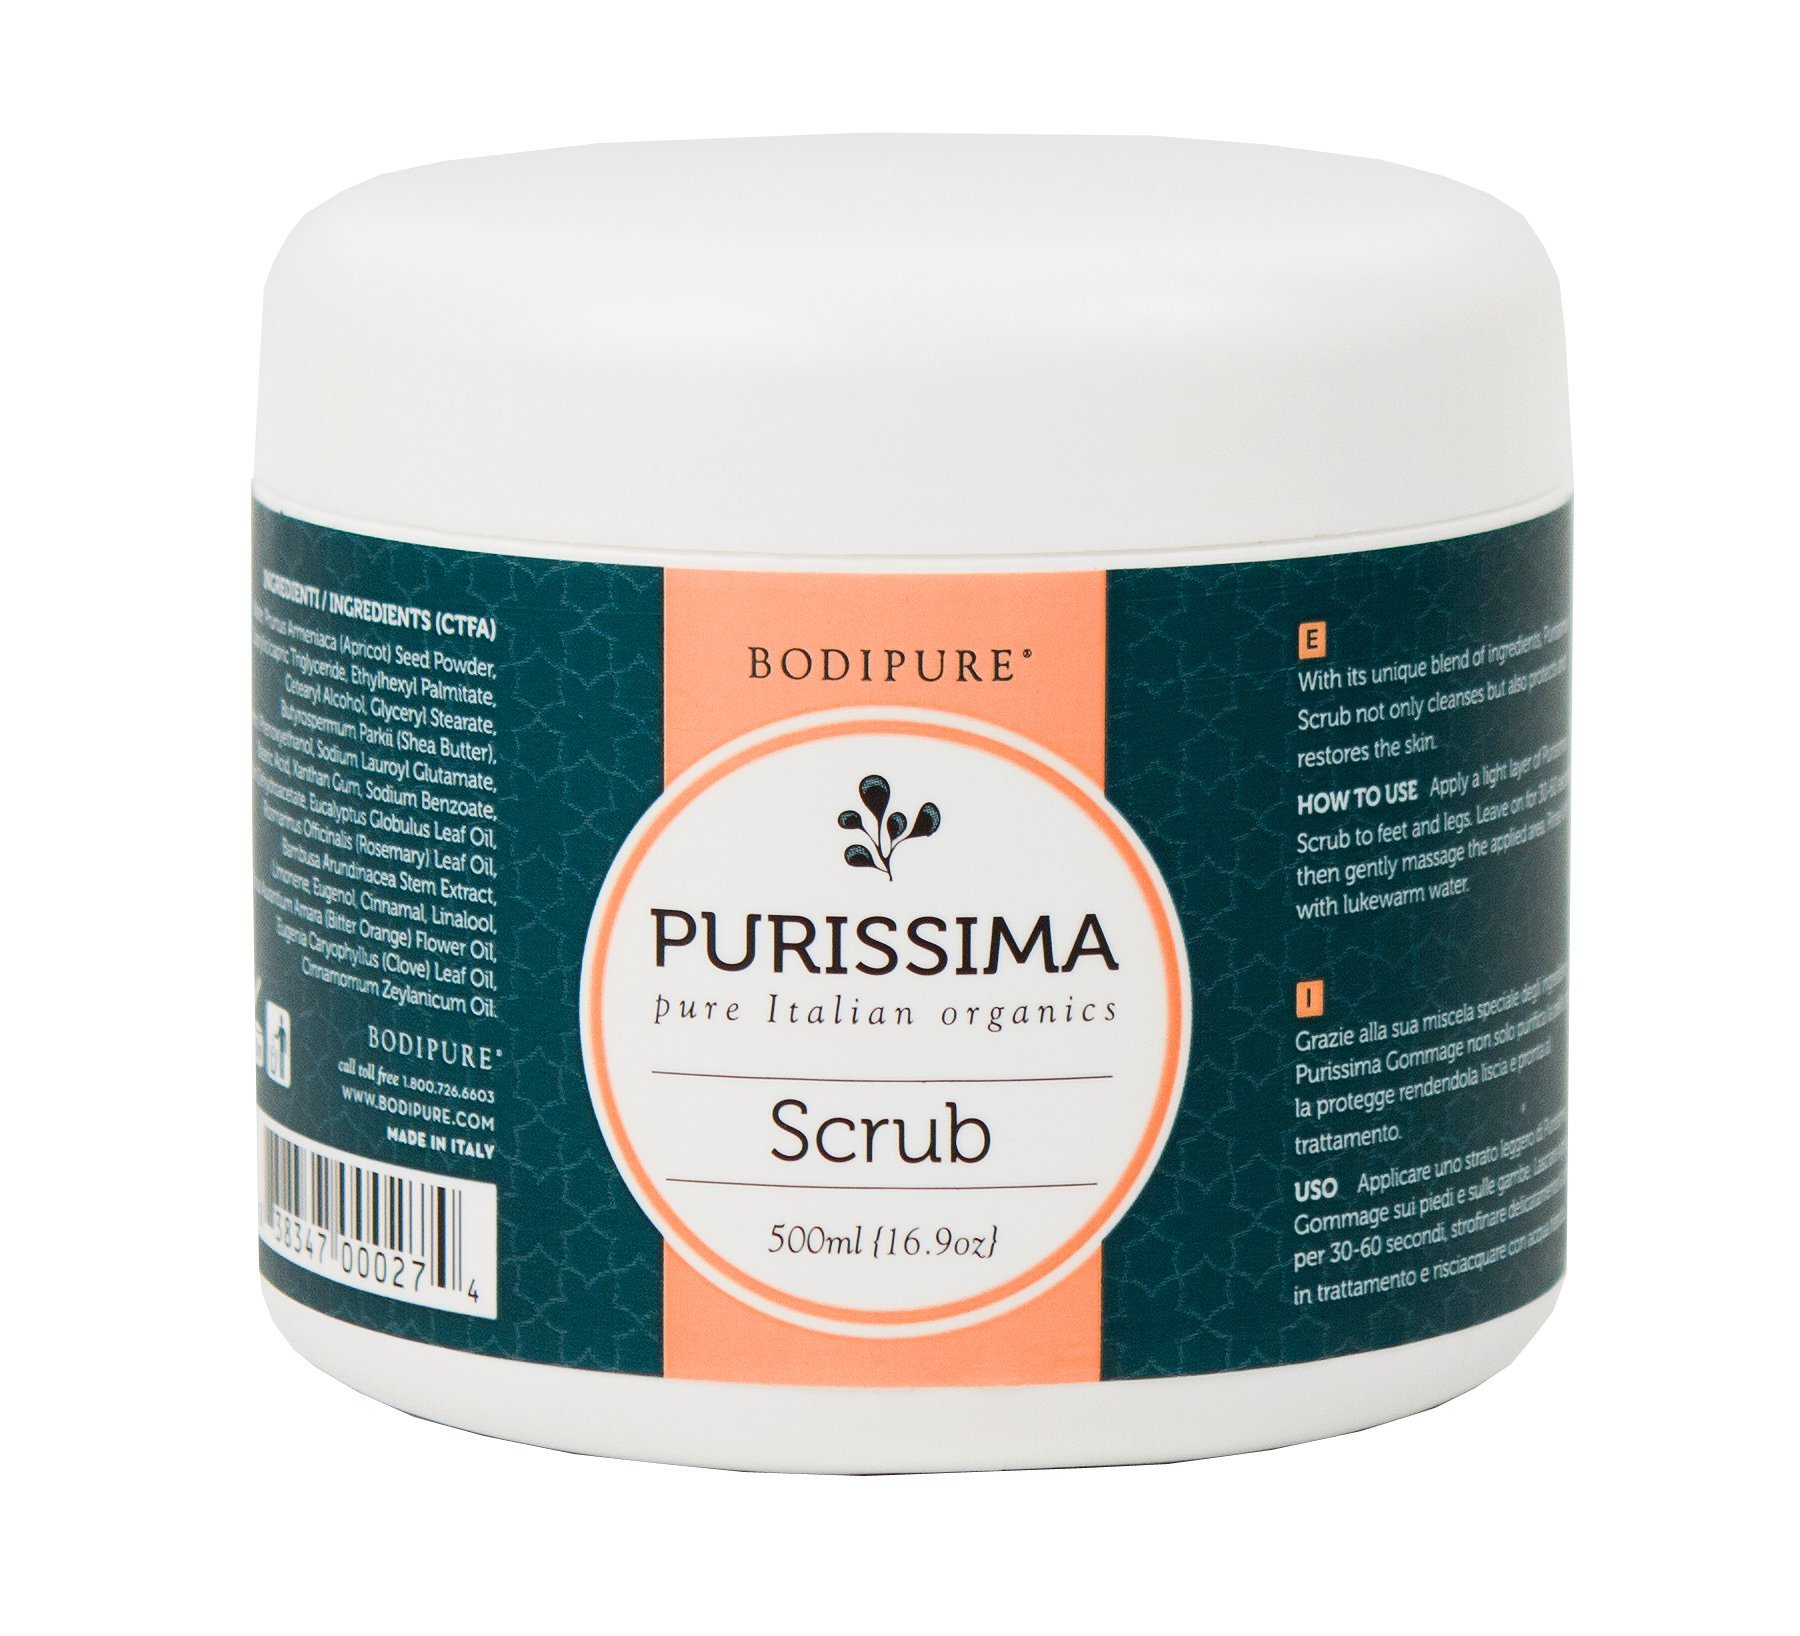 Purissima Organic Scrub from Italy-500ml by Bodipure